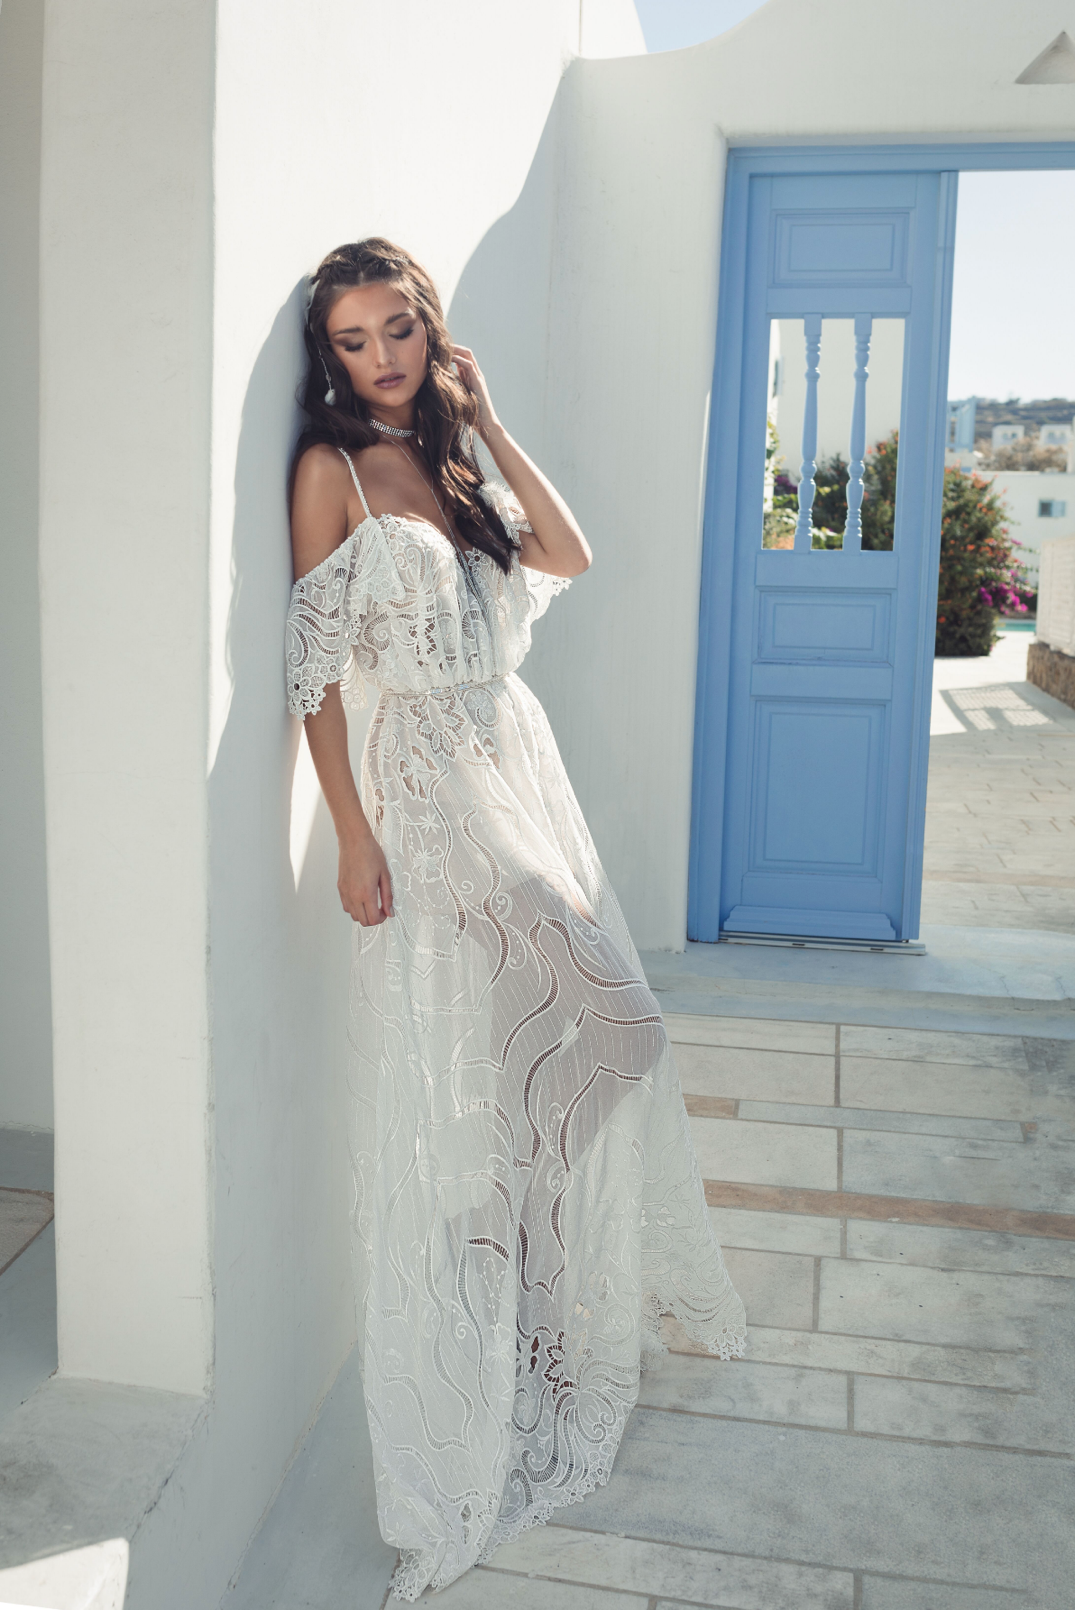 70's inspired bridal gowns by Julie Vino